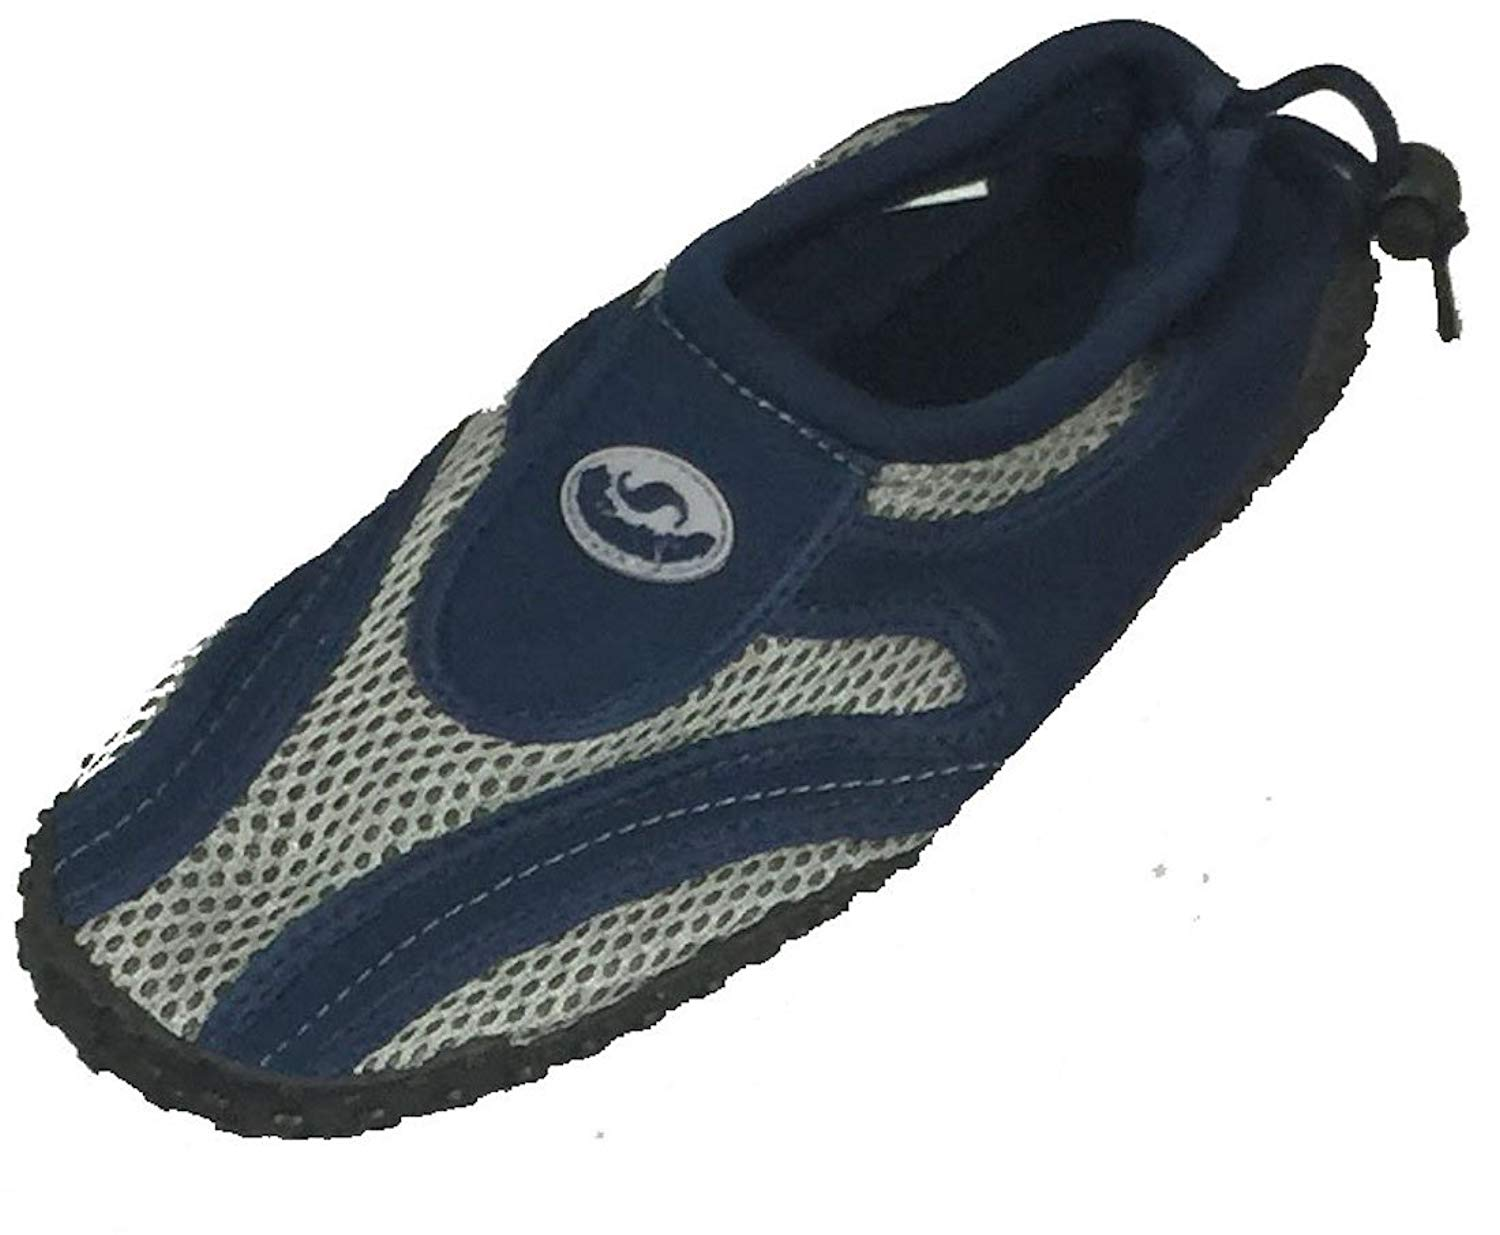 f90554e890 Buy Shoe Shack Mens Wave Water Shoes Pool Beach Aqua Socks